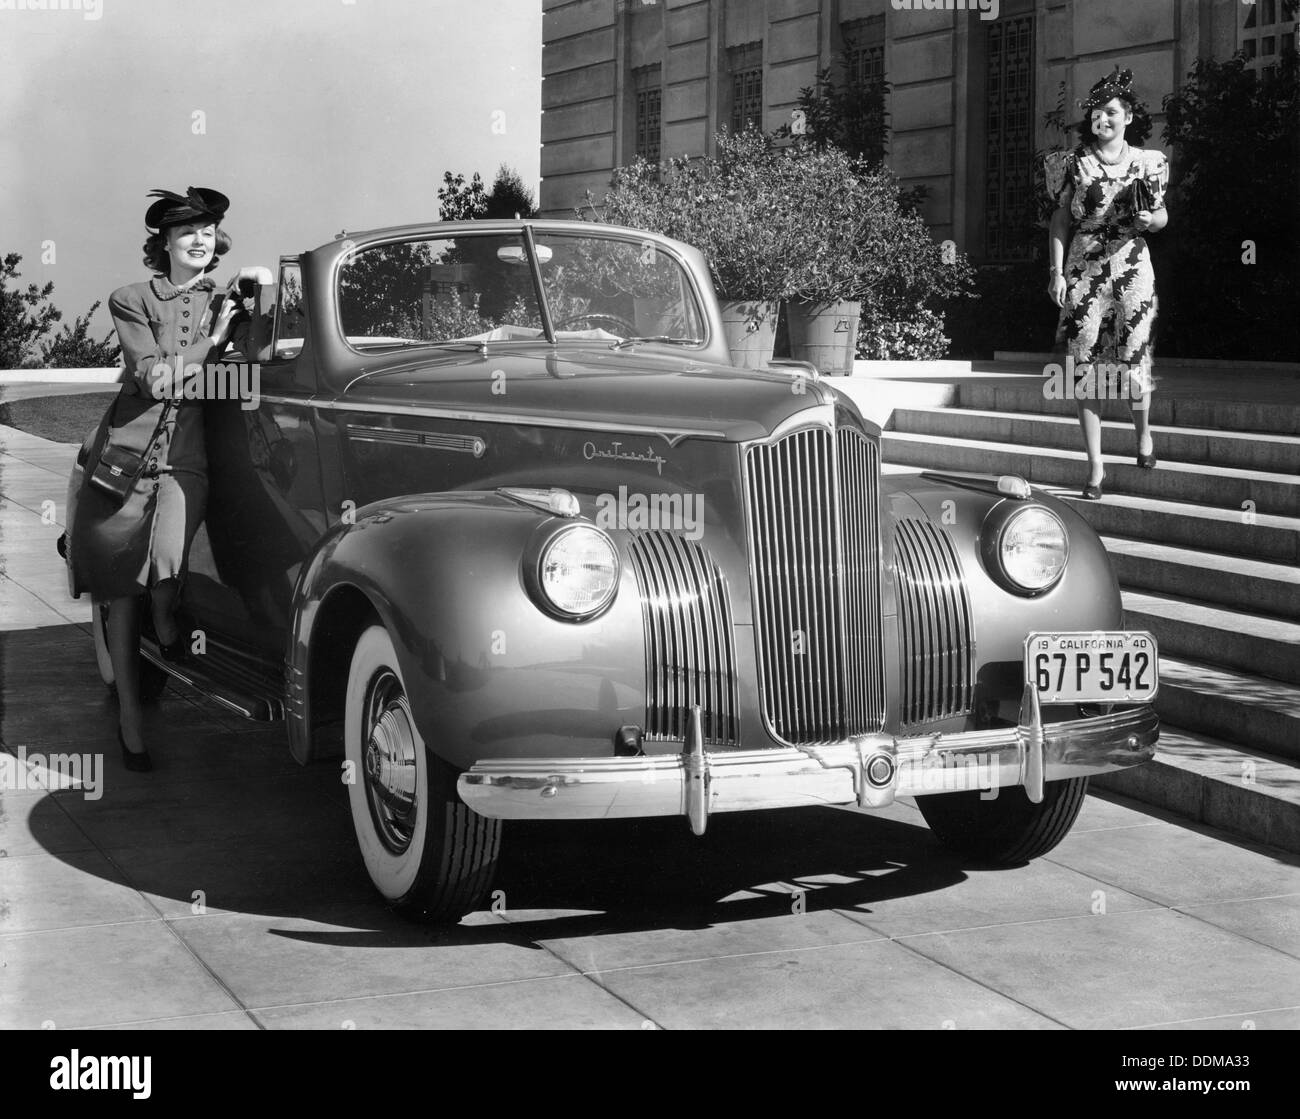 1941 Packard 120 convertible coupe, (c1941?). - Stock Image